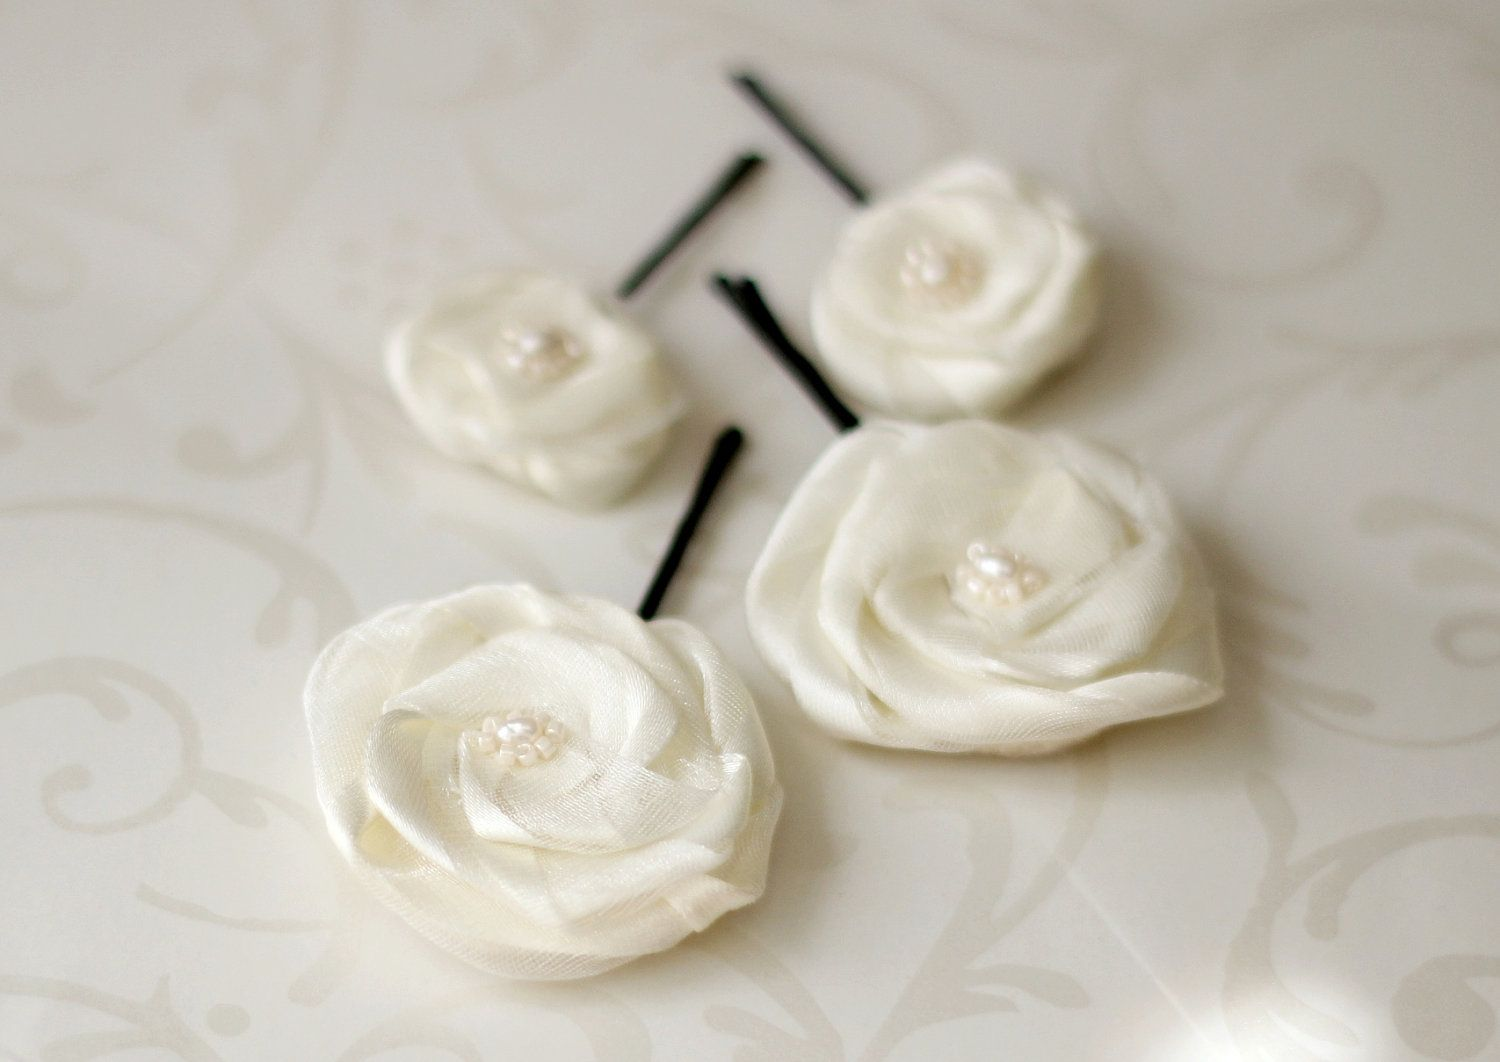 Flower Hair Pins - Ivory or White Bridal Accessory - Set of 4 - Bridesmaids Gift